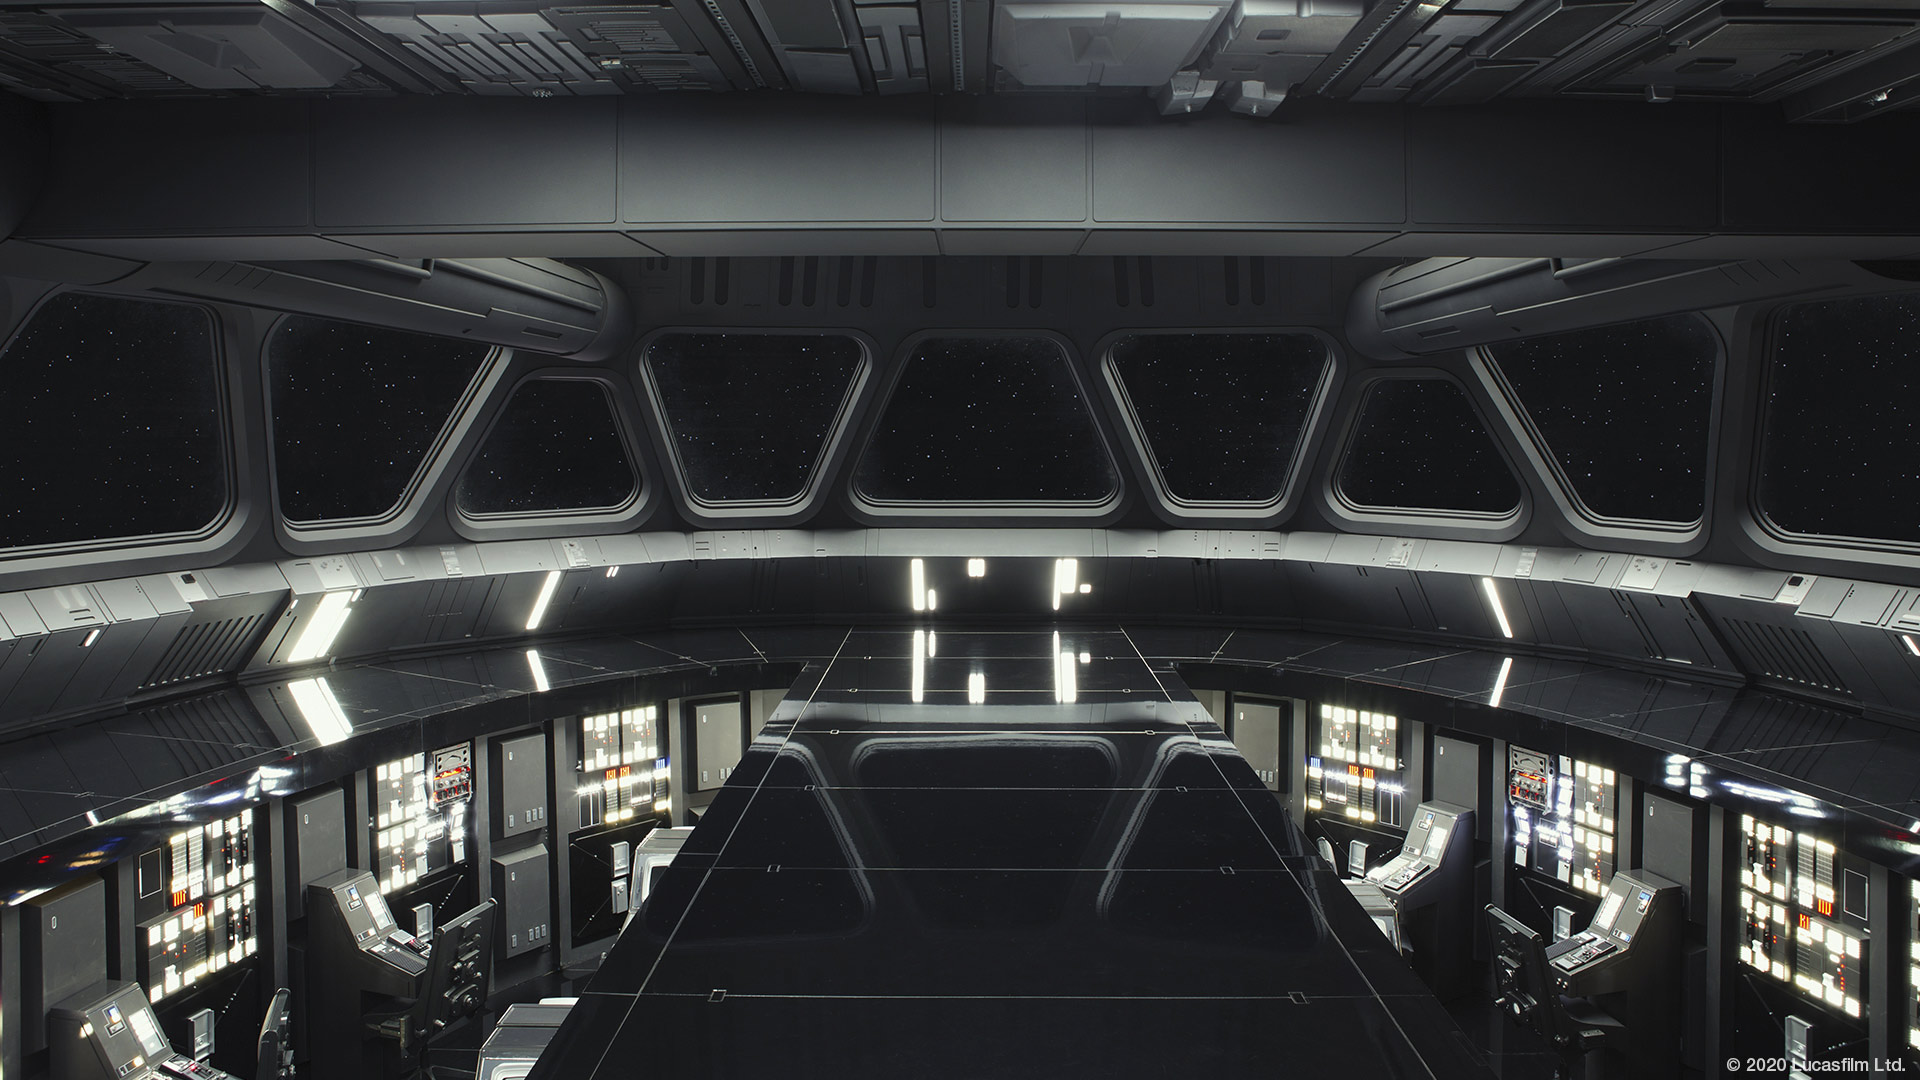 Star Wars virtual background: Imperial Star Destroyer bridge